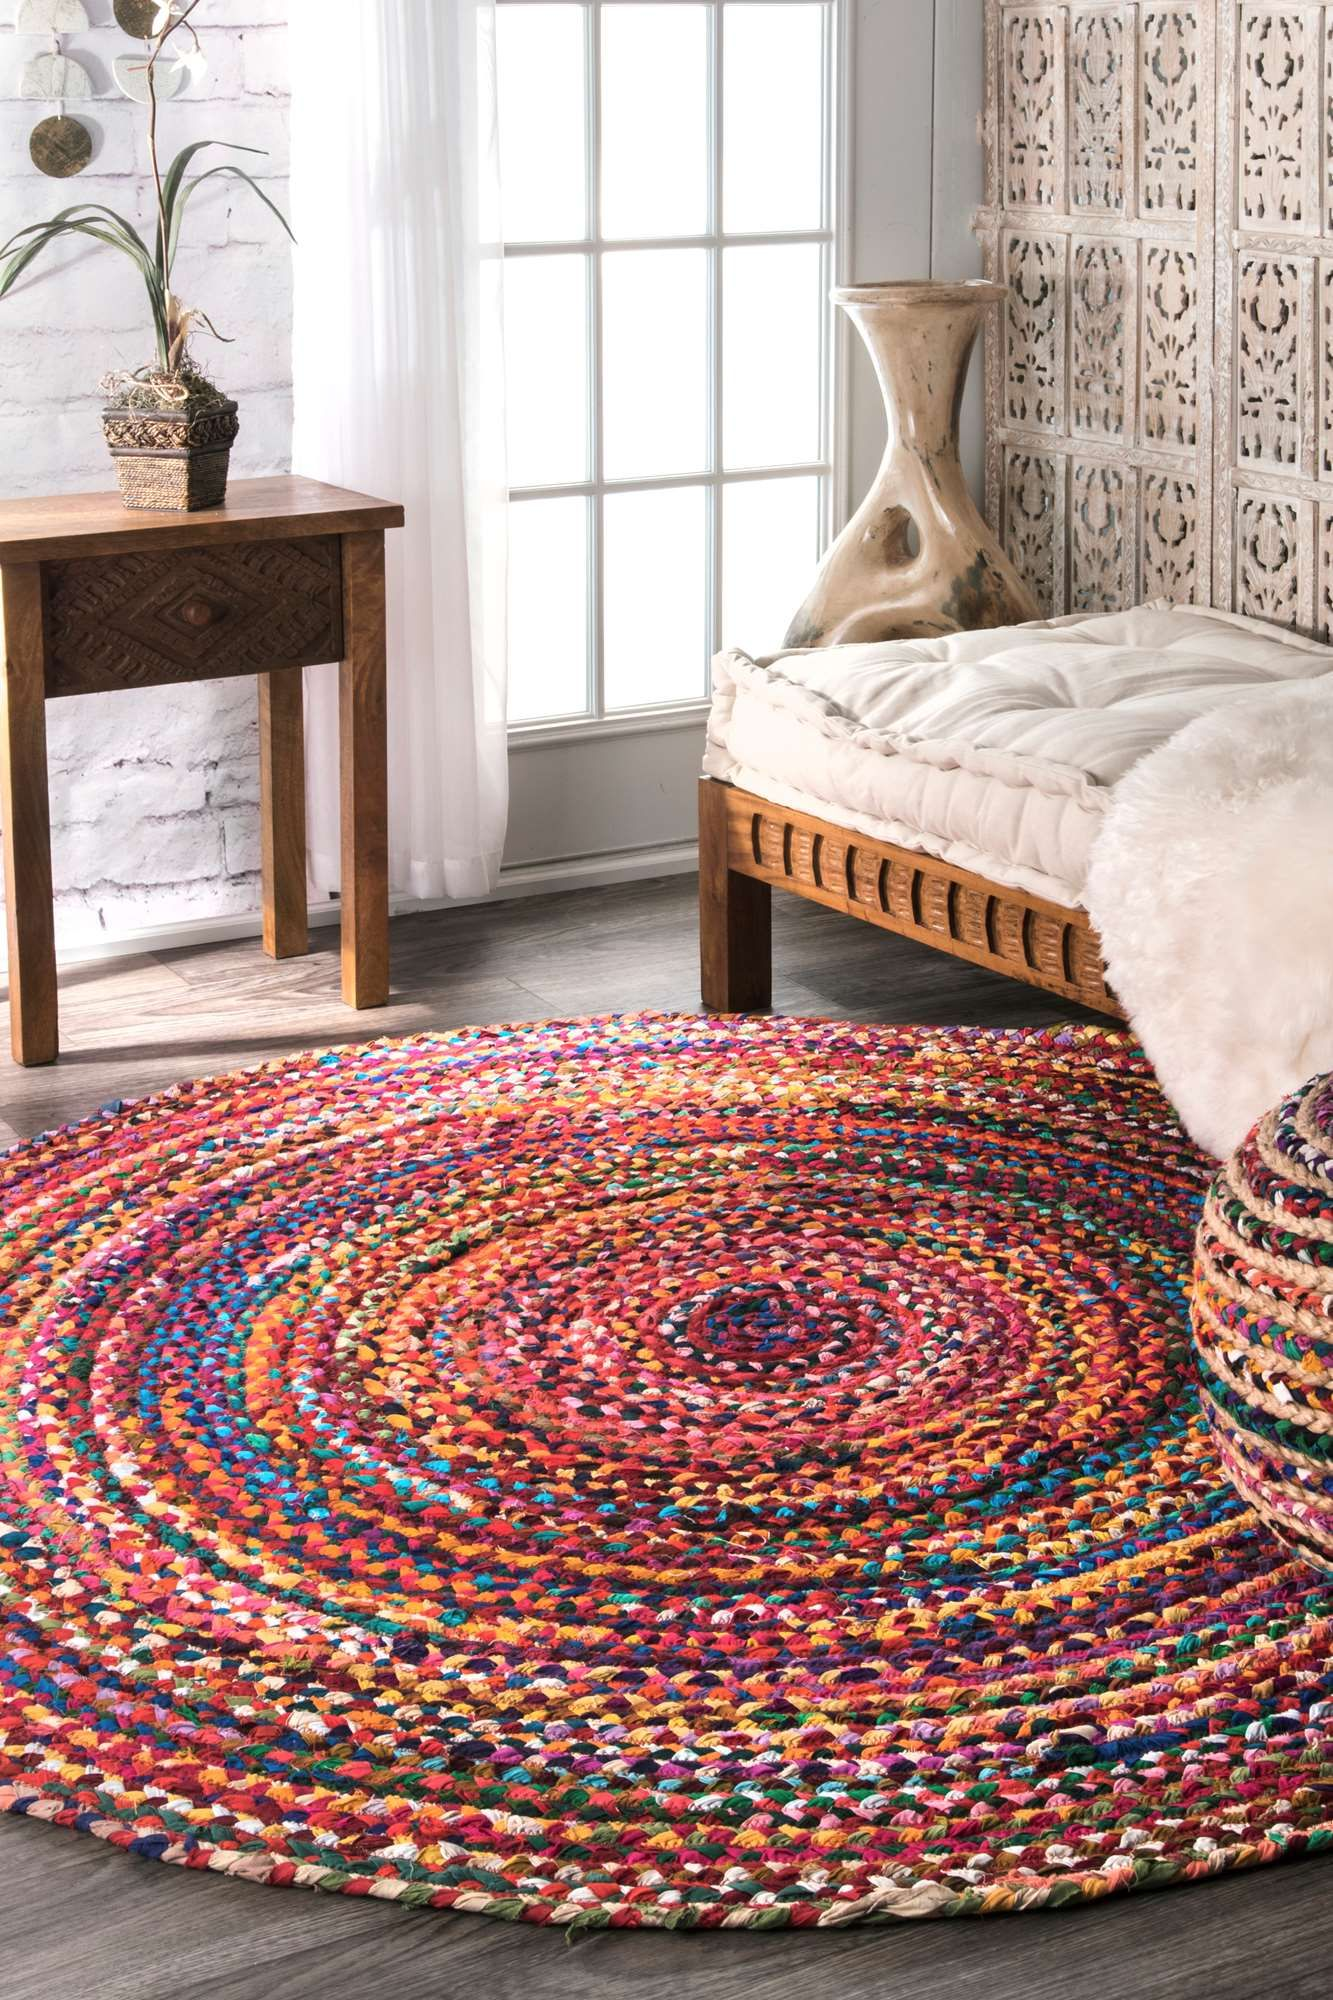 exceptional Round Braided Rugs For Sale Part - 7: Rugs USA Chindi Braided RUG